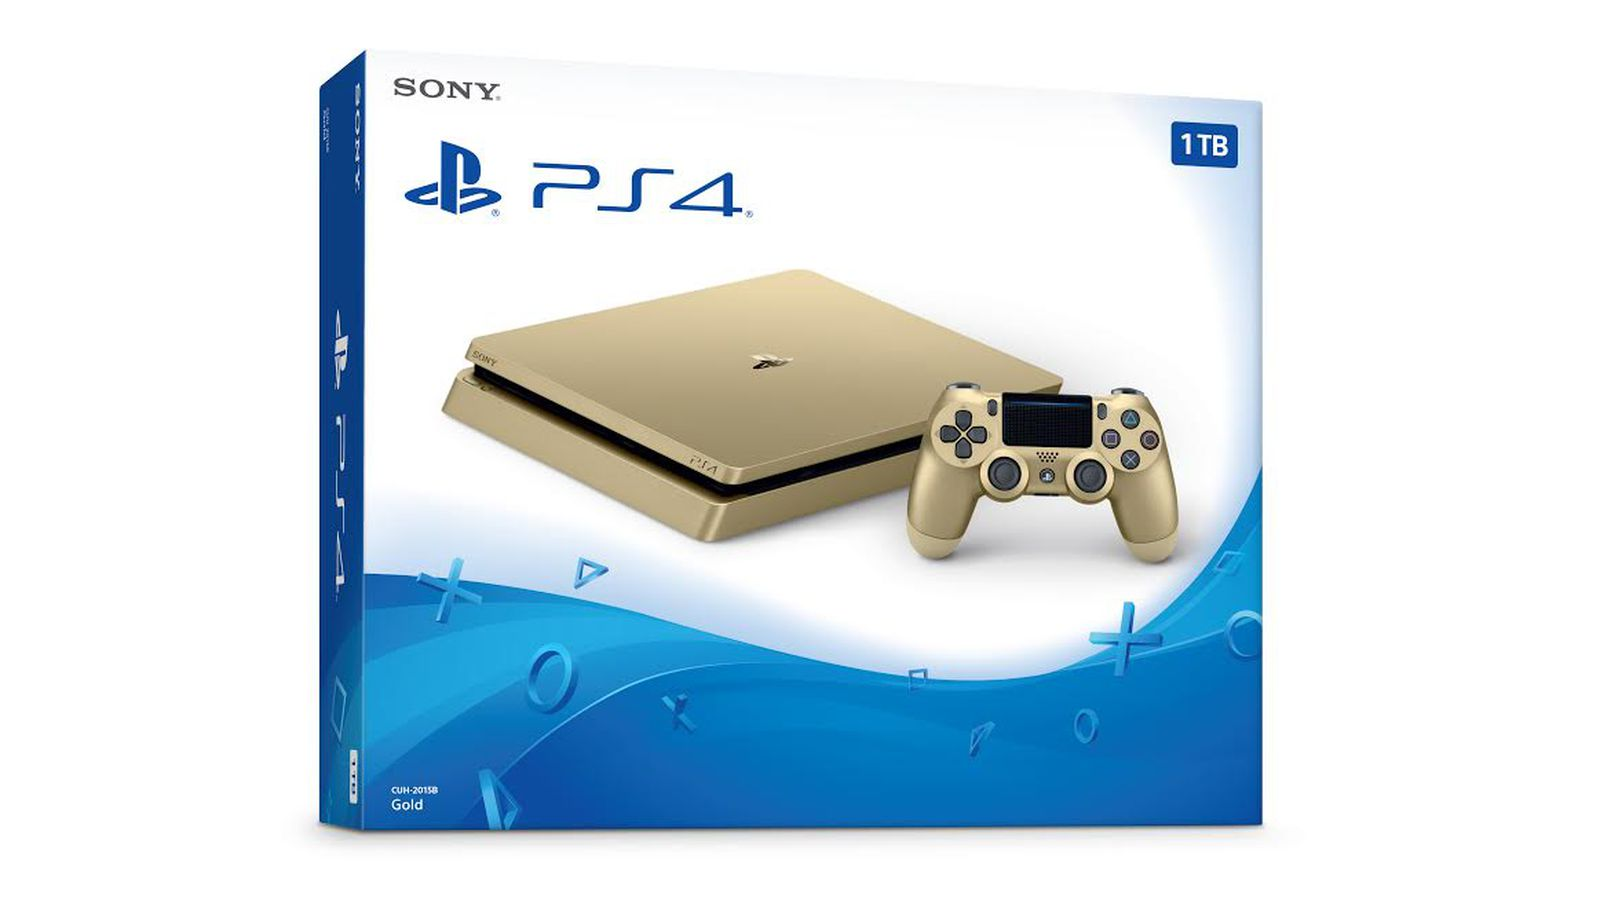 Sony is releasing a limited edition gold PS4 for $249